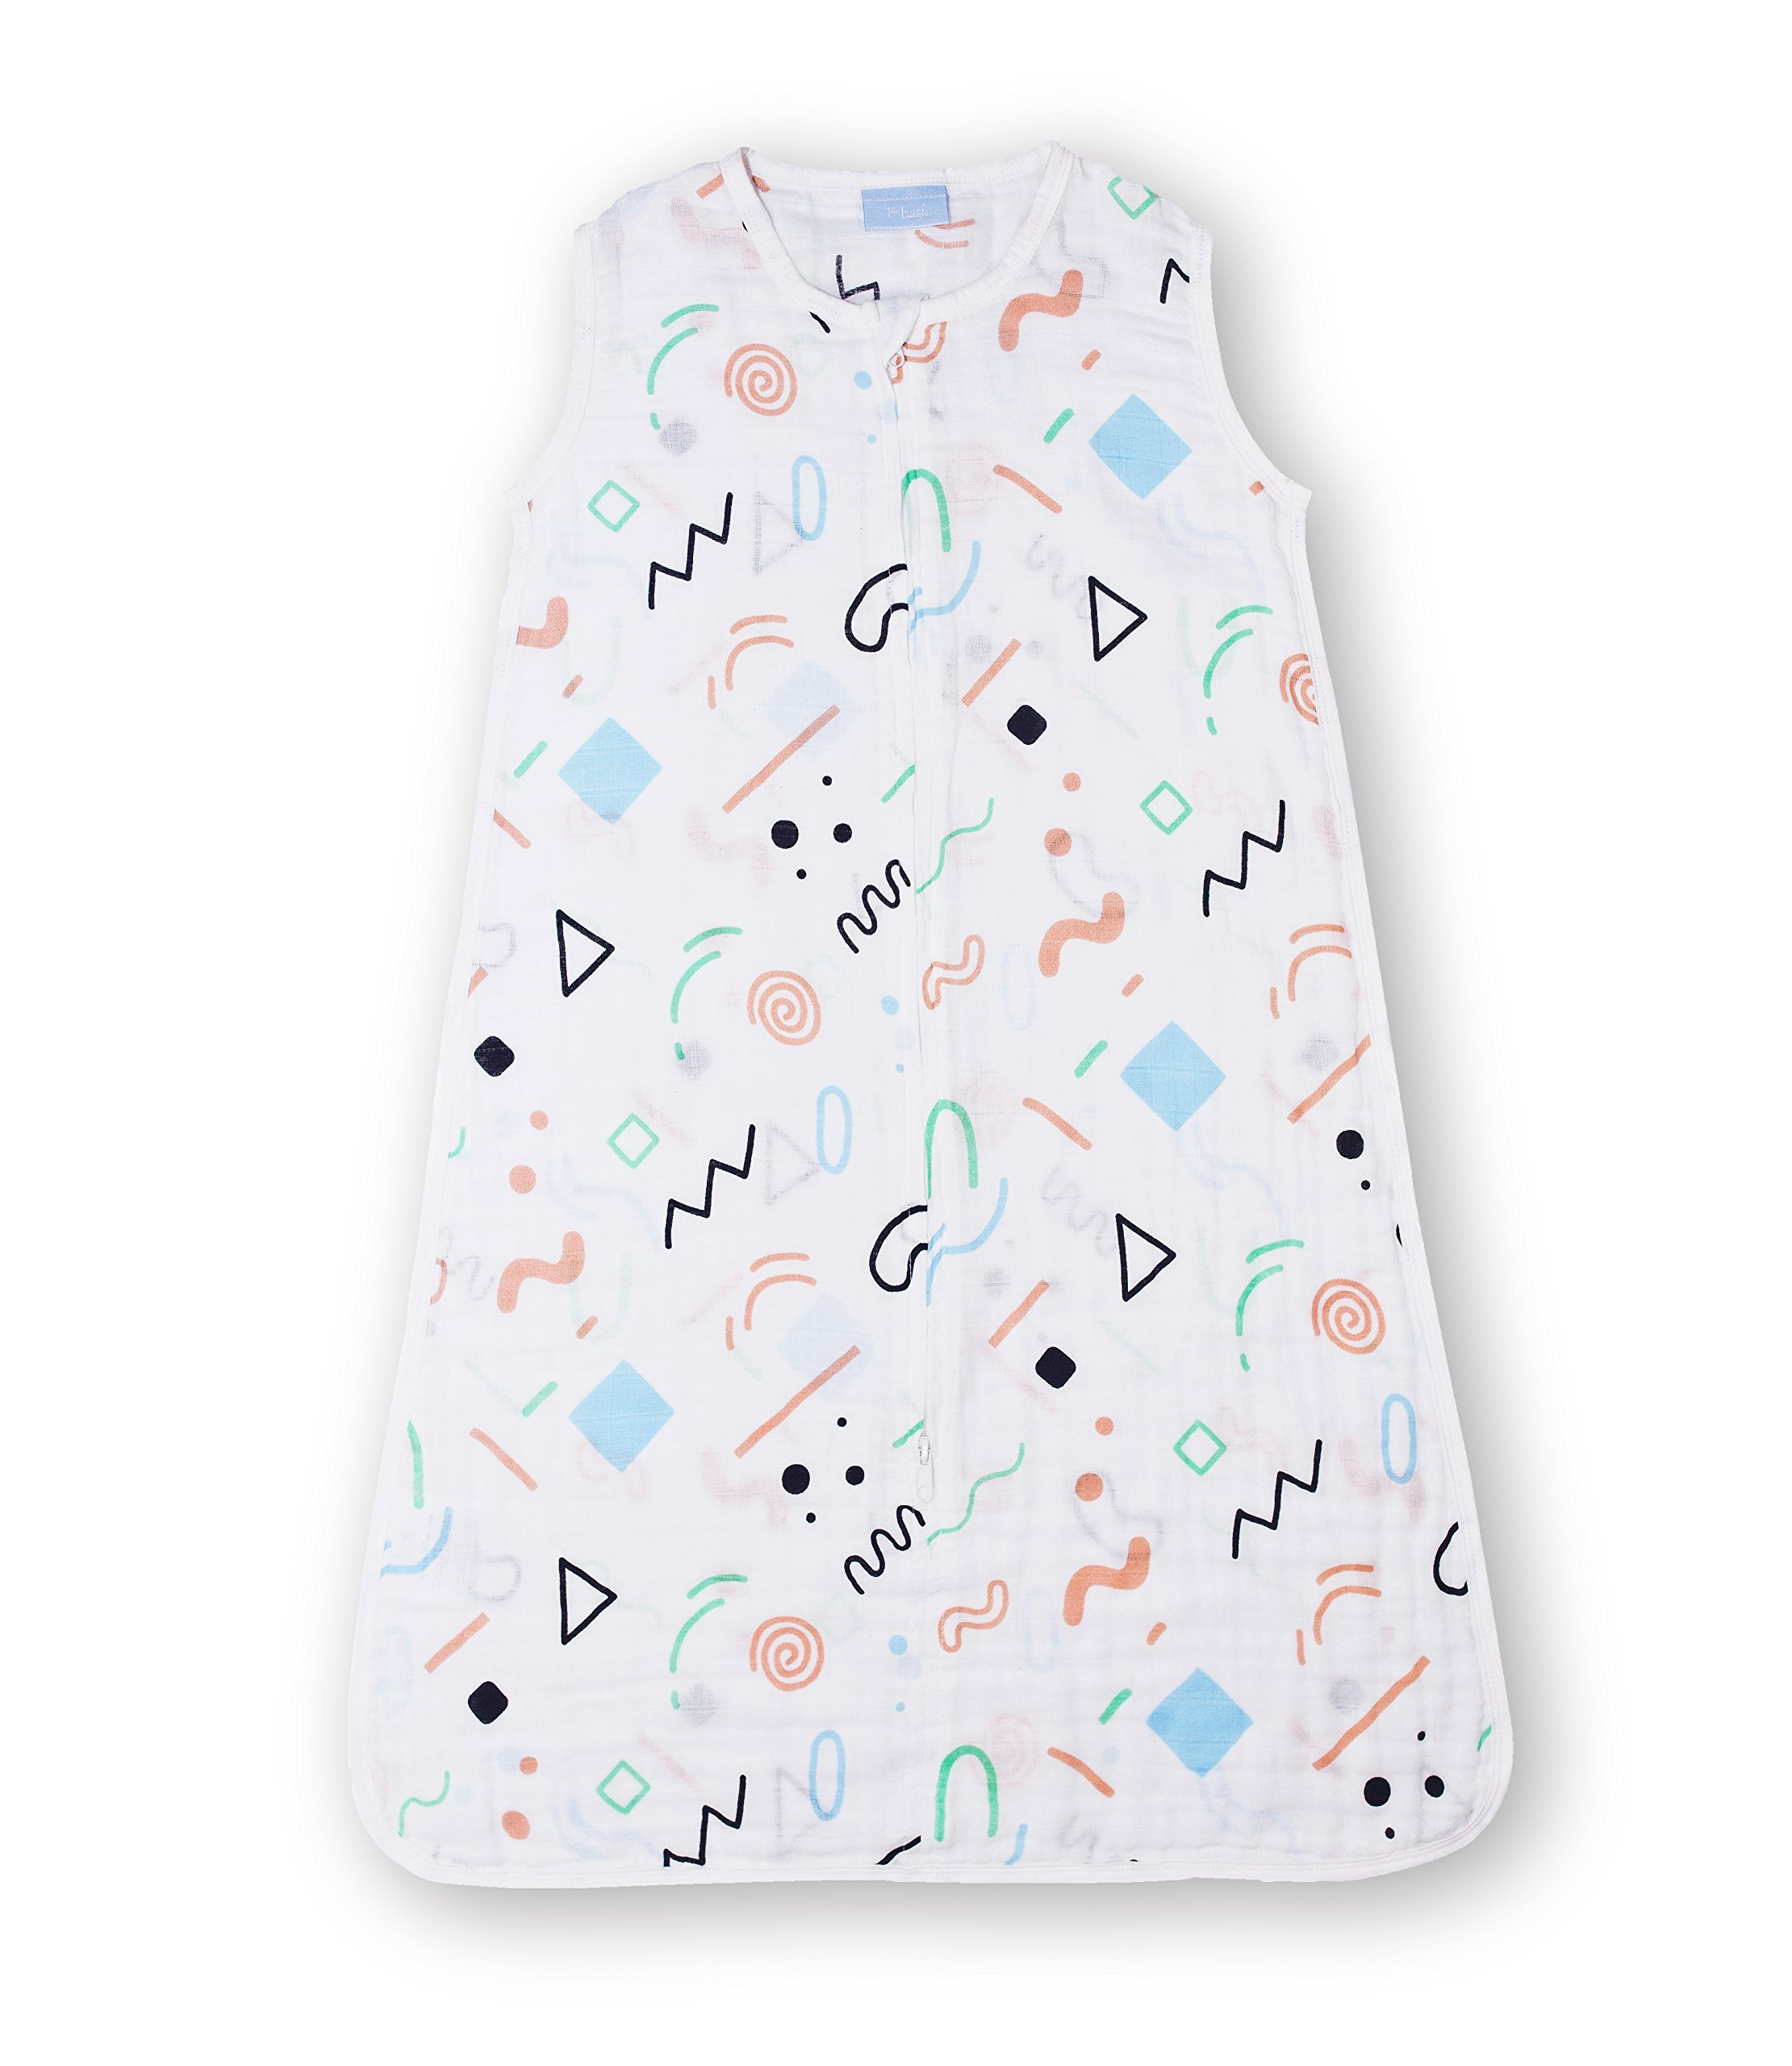 1st Laugh 100% Cotton Muslin Baby Sleeping Sack Bag, Geom S, for Boy and Girl